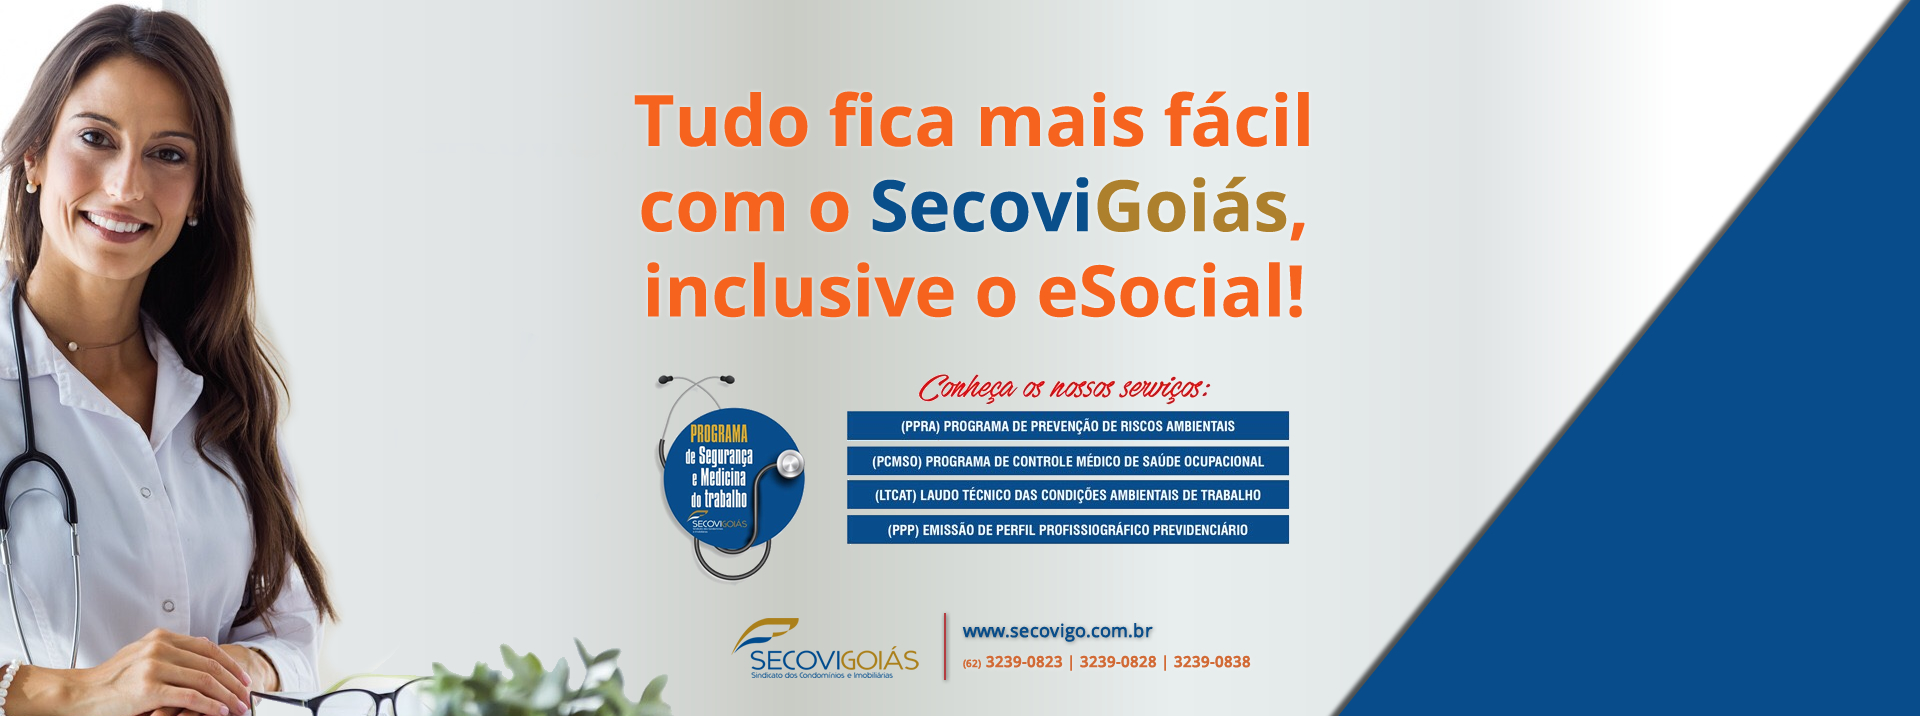 Sicoob Secovicred - eSocial!